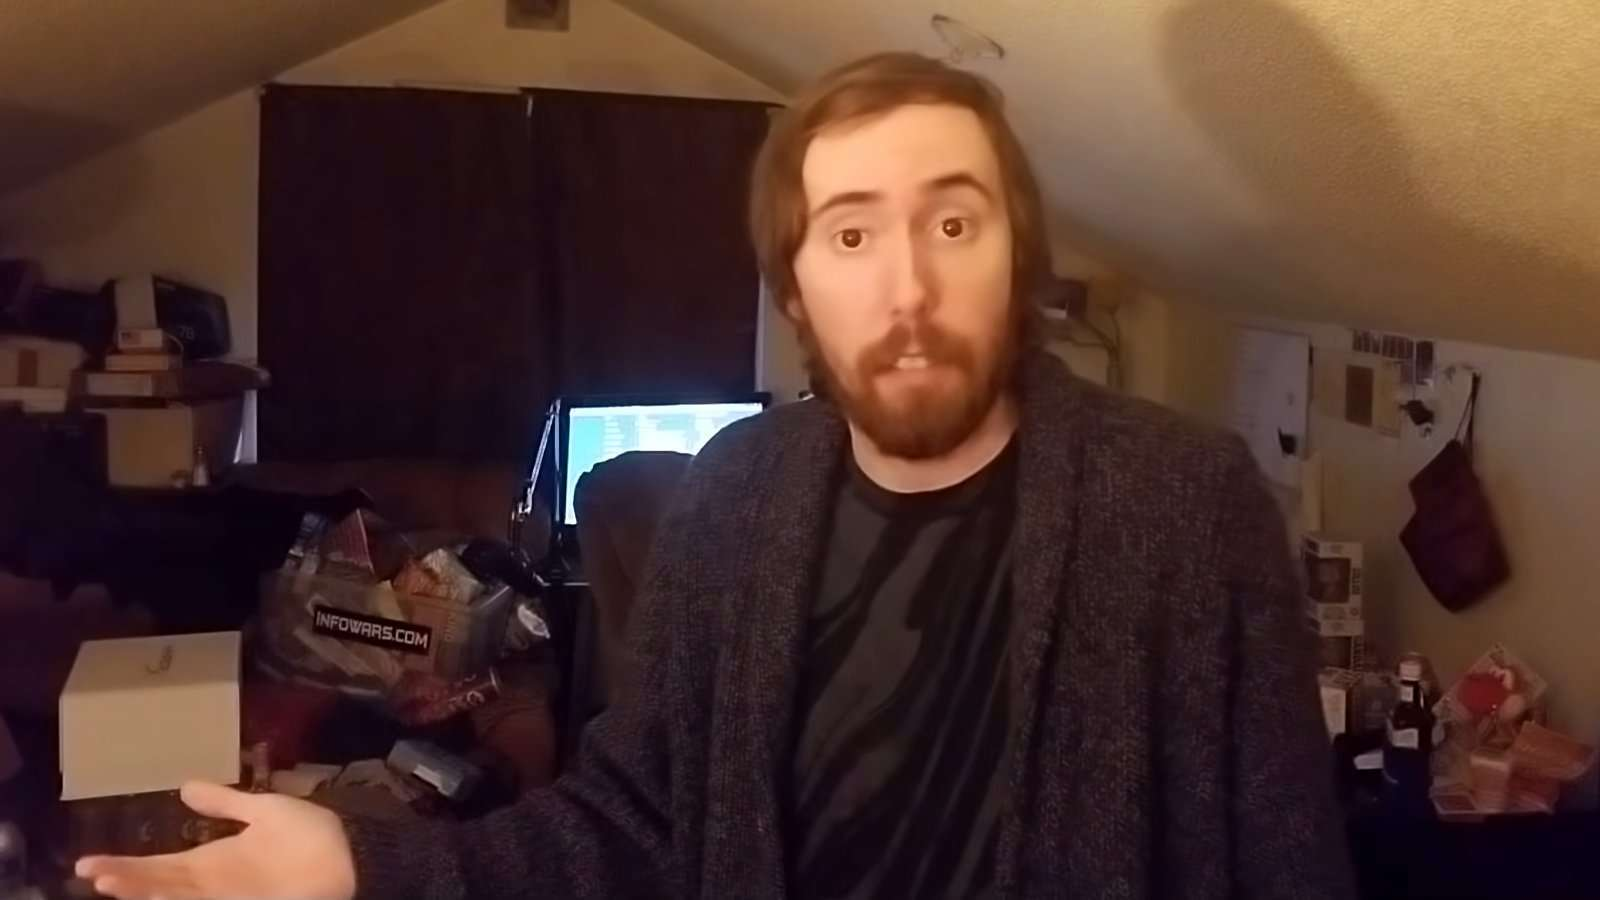 asmongold girlfriend 2021 who is he dating in 2021 60621424aa9a4 Asmongold Girlfriend 2021: Who Is He Dating In 2021